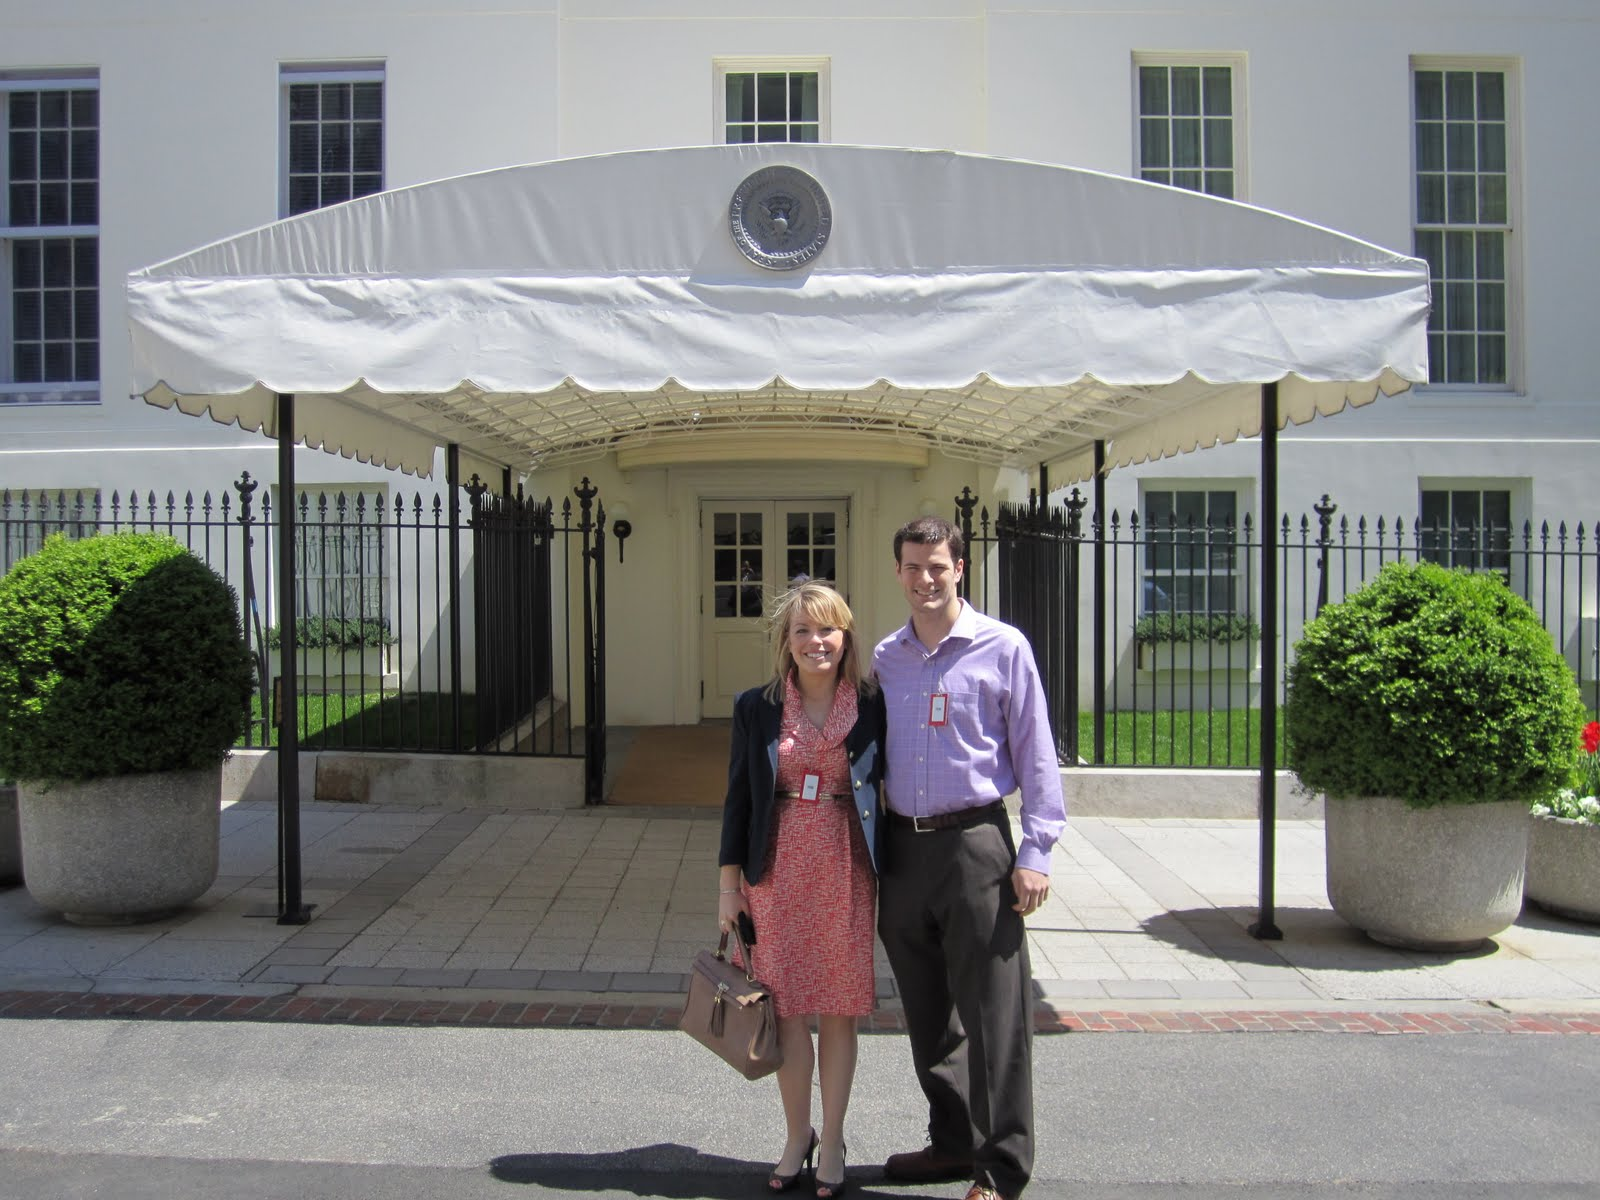 west wing oval office. West Wing Tour Oval Office